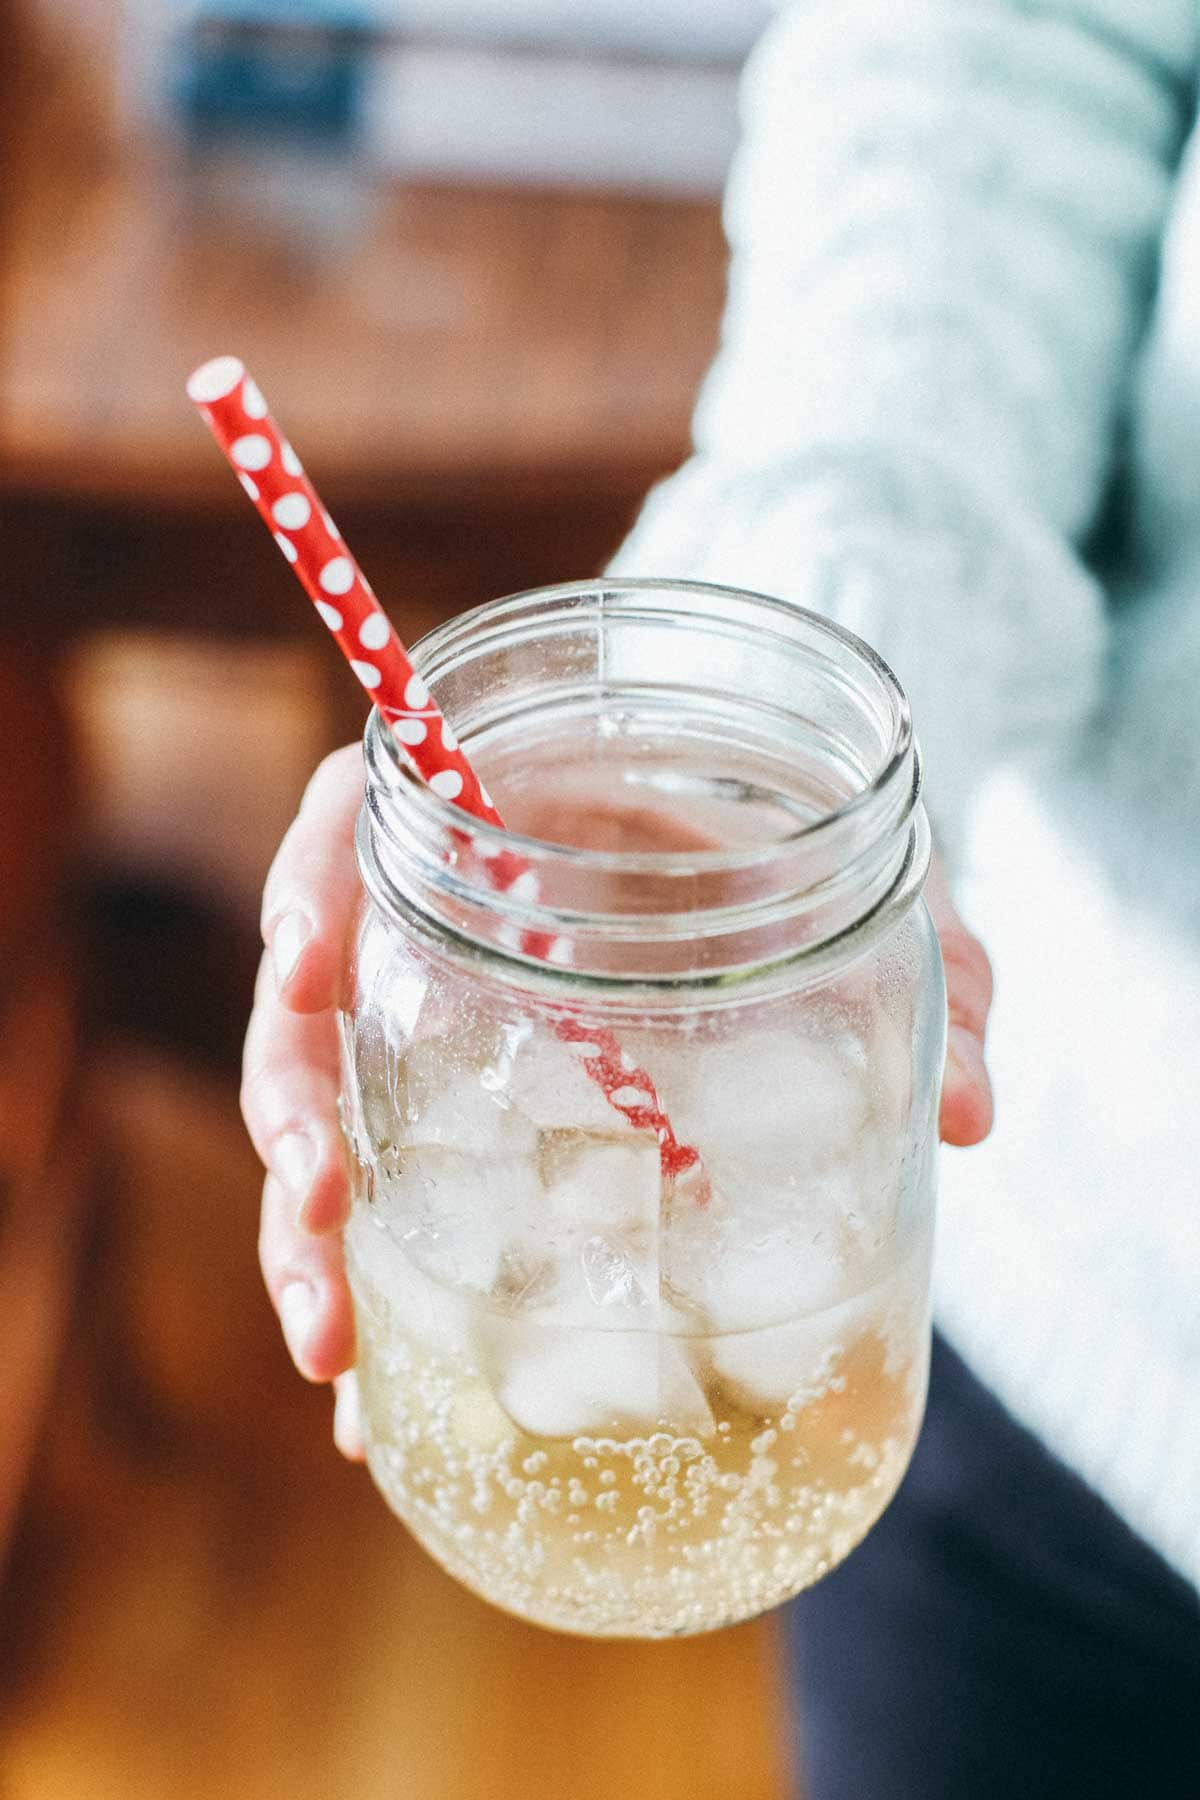 Drink in a jar with a straw.